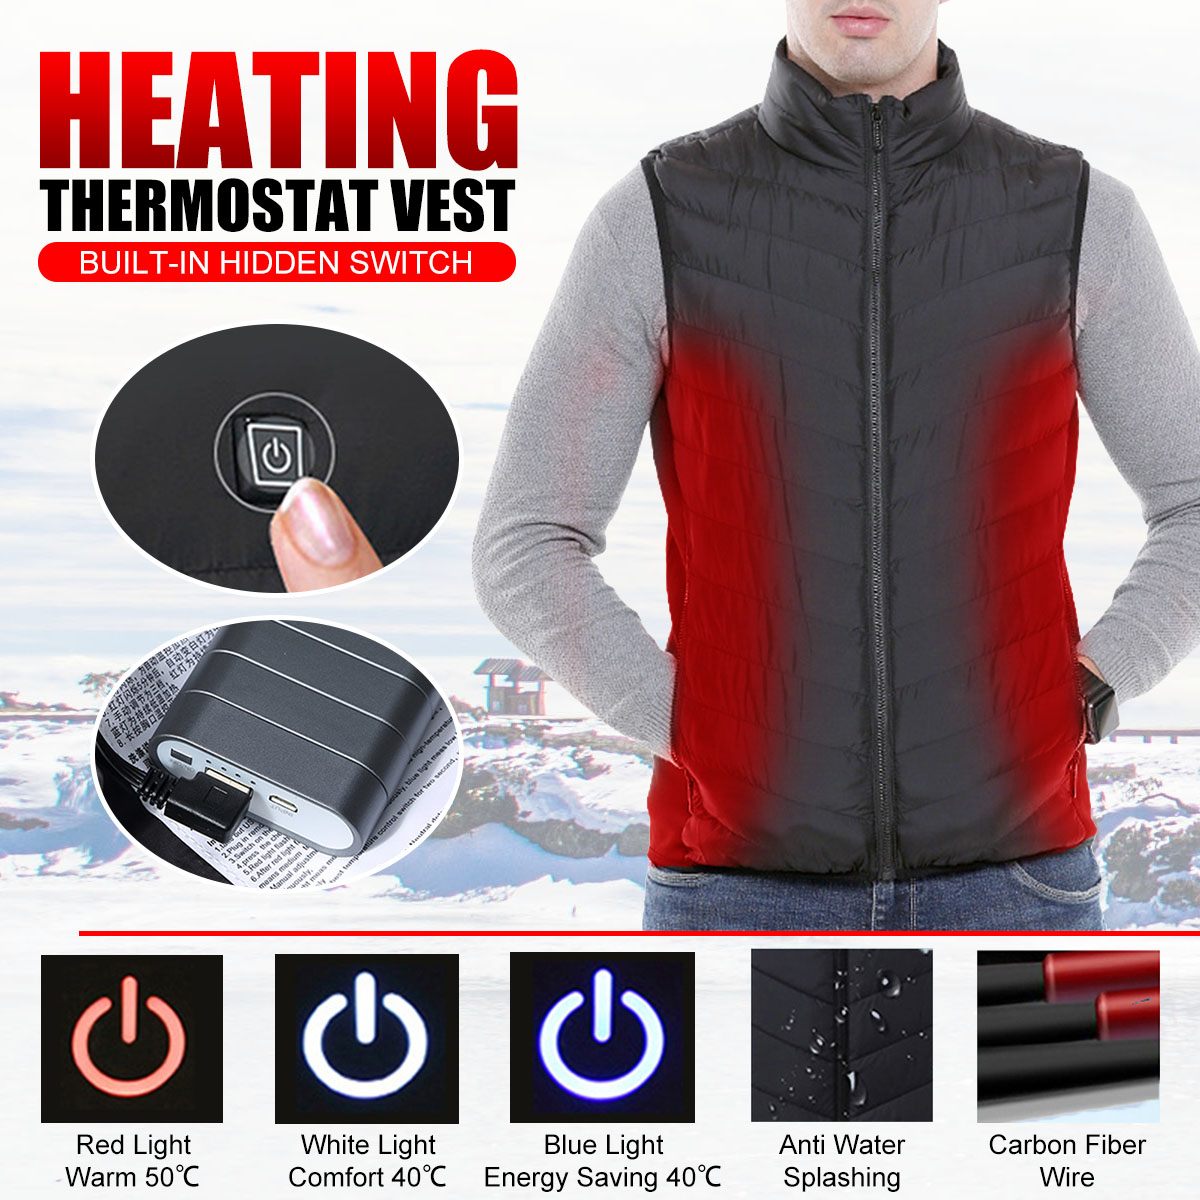 Mens Winter Heated USB Charge Hooded Work Jacket Coats Vest Adjustable Temperature Control Safety Clothing mens winter heated usb charge hooded work jacket coats vest adjustable temperature control safety clothing